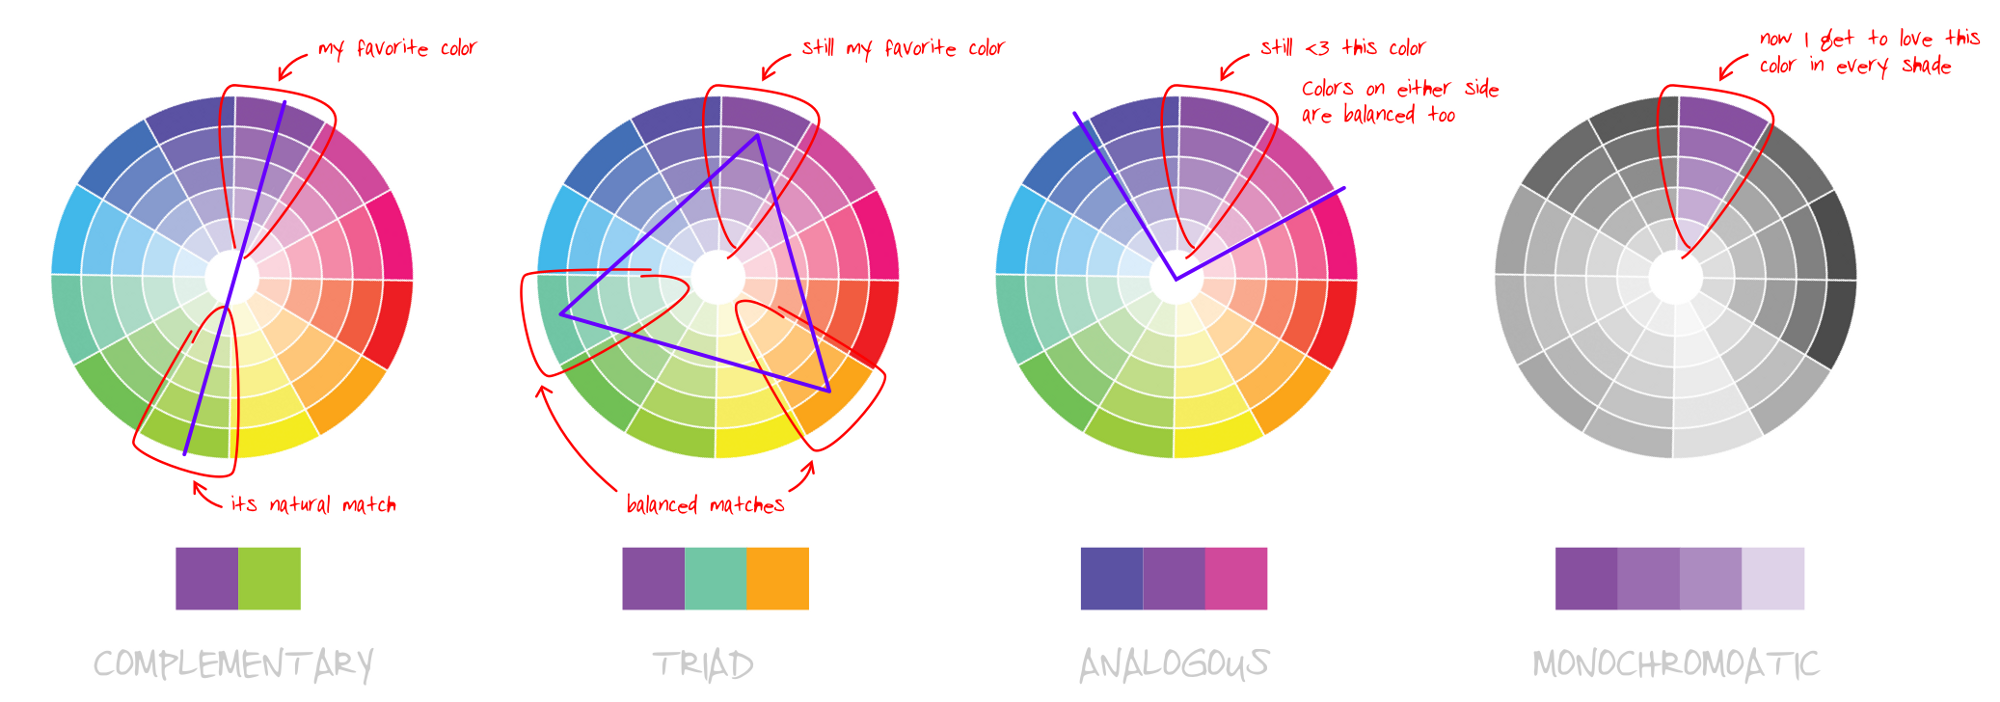 an analysis of the color theory in color photography Working with color theory photography creates imagery with harmonious and balanced colors i don't always adhere to the color wheel with complete devotion, however my favourite color photographs tend to follow the rules color organisation systems have been around for hundreds of years.